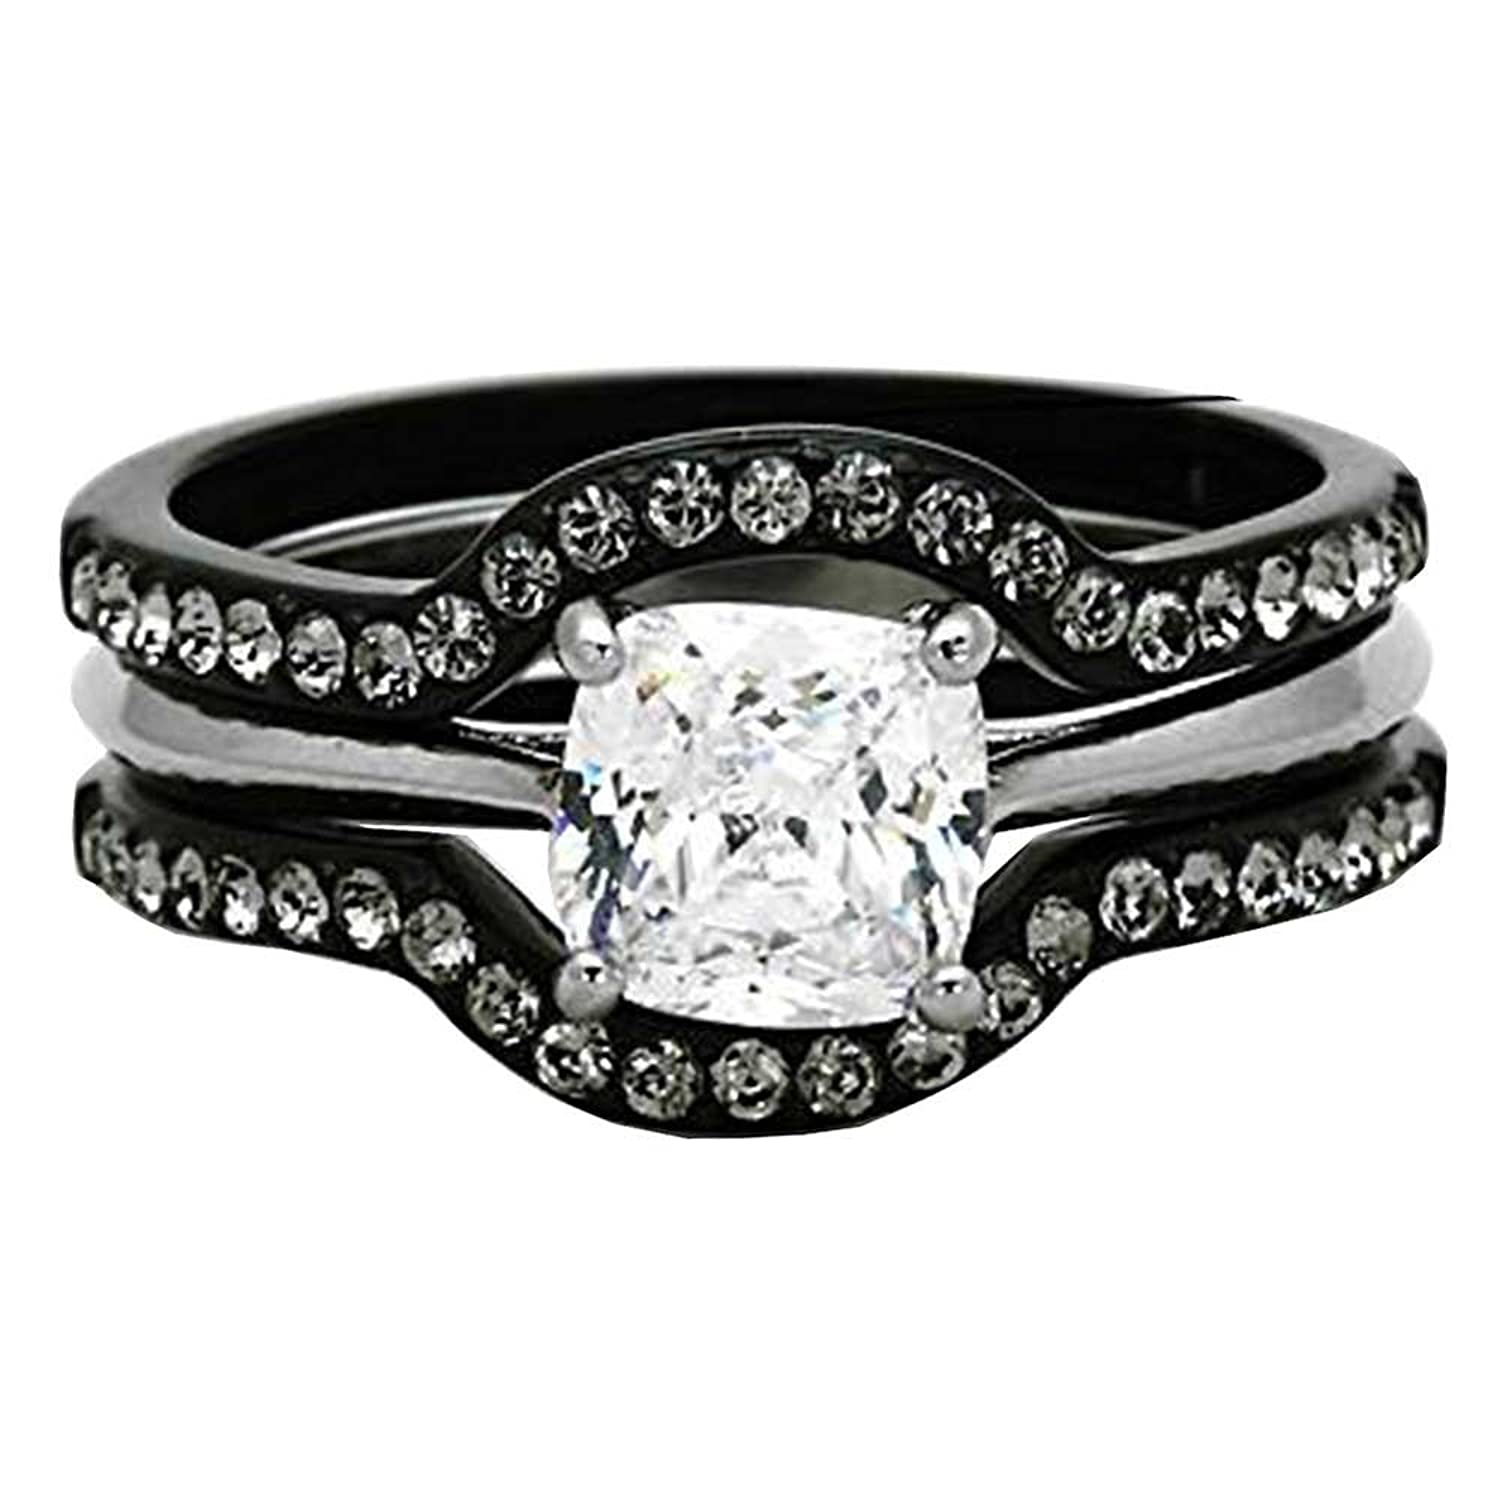 amazoncom black stainless steel wedding ring sets cushion cut cubic zirconia women size 45 to 11 spj jewelry - Womens Black Wedding Rings